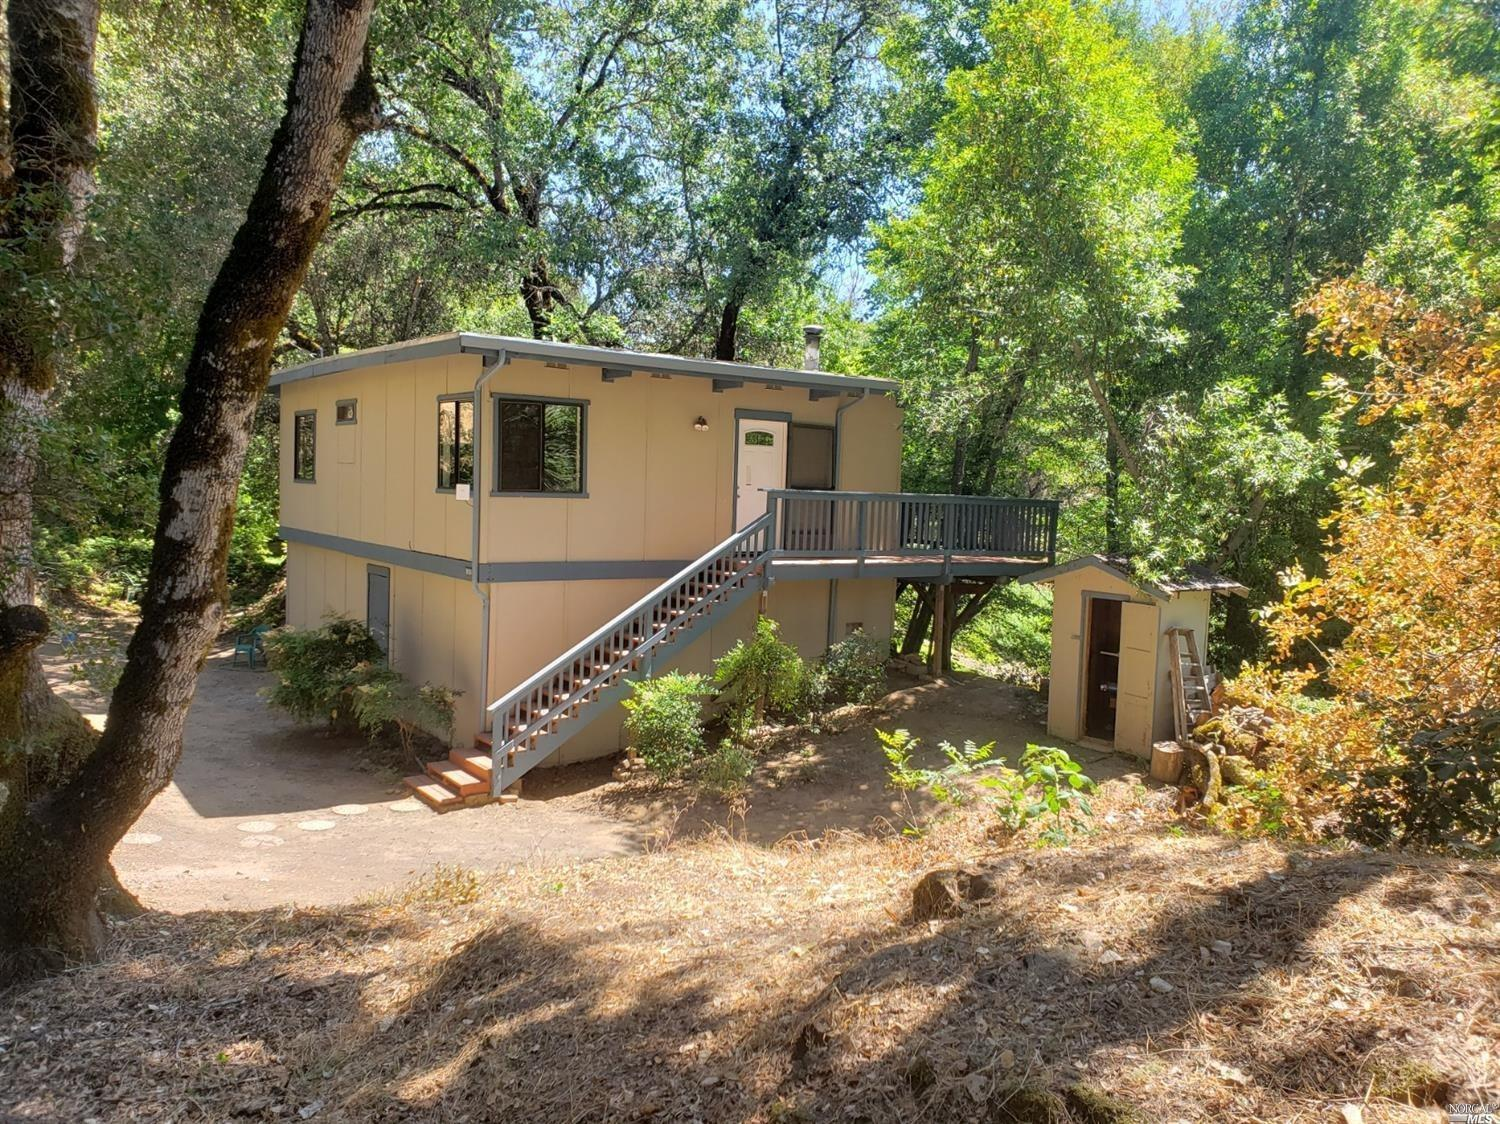 8001 E Side Potter Valley Road, Potter Valley, CA 95469